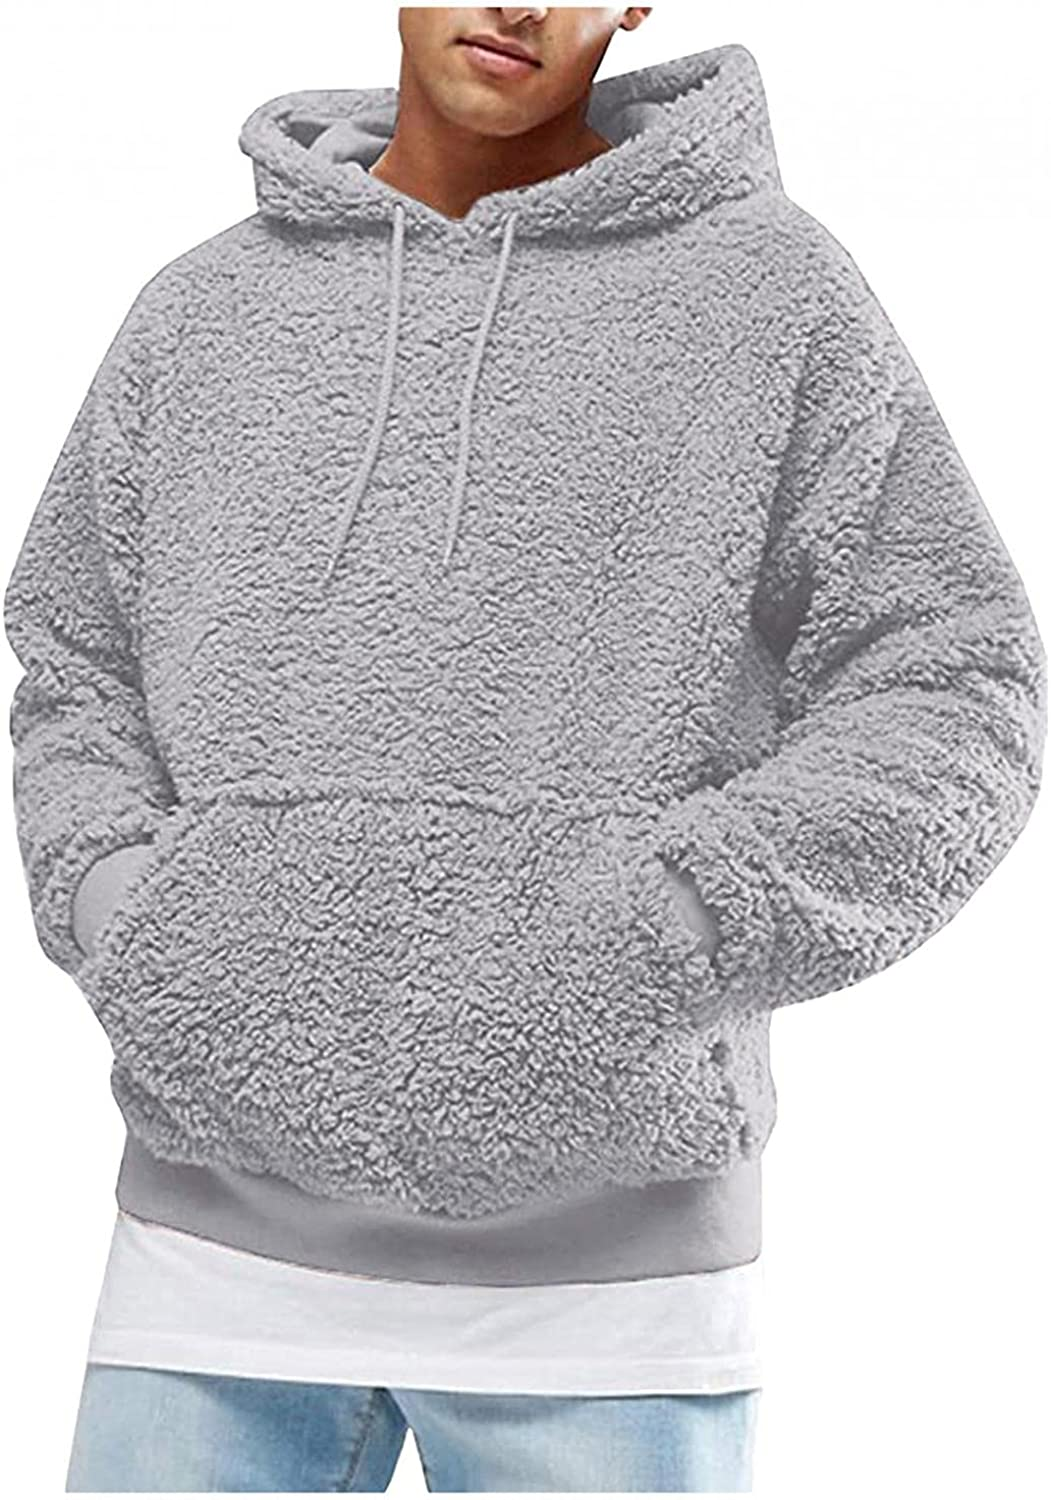 Huangse Mens Fuzzy Sherpa Jacket Hooded Fleece Cozy Pullover Long Sleeve Hoodies with Pocket Thermal Coat Fall Winter Outwear